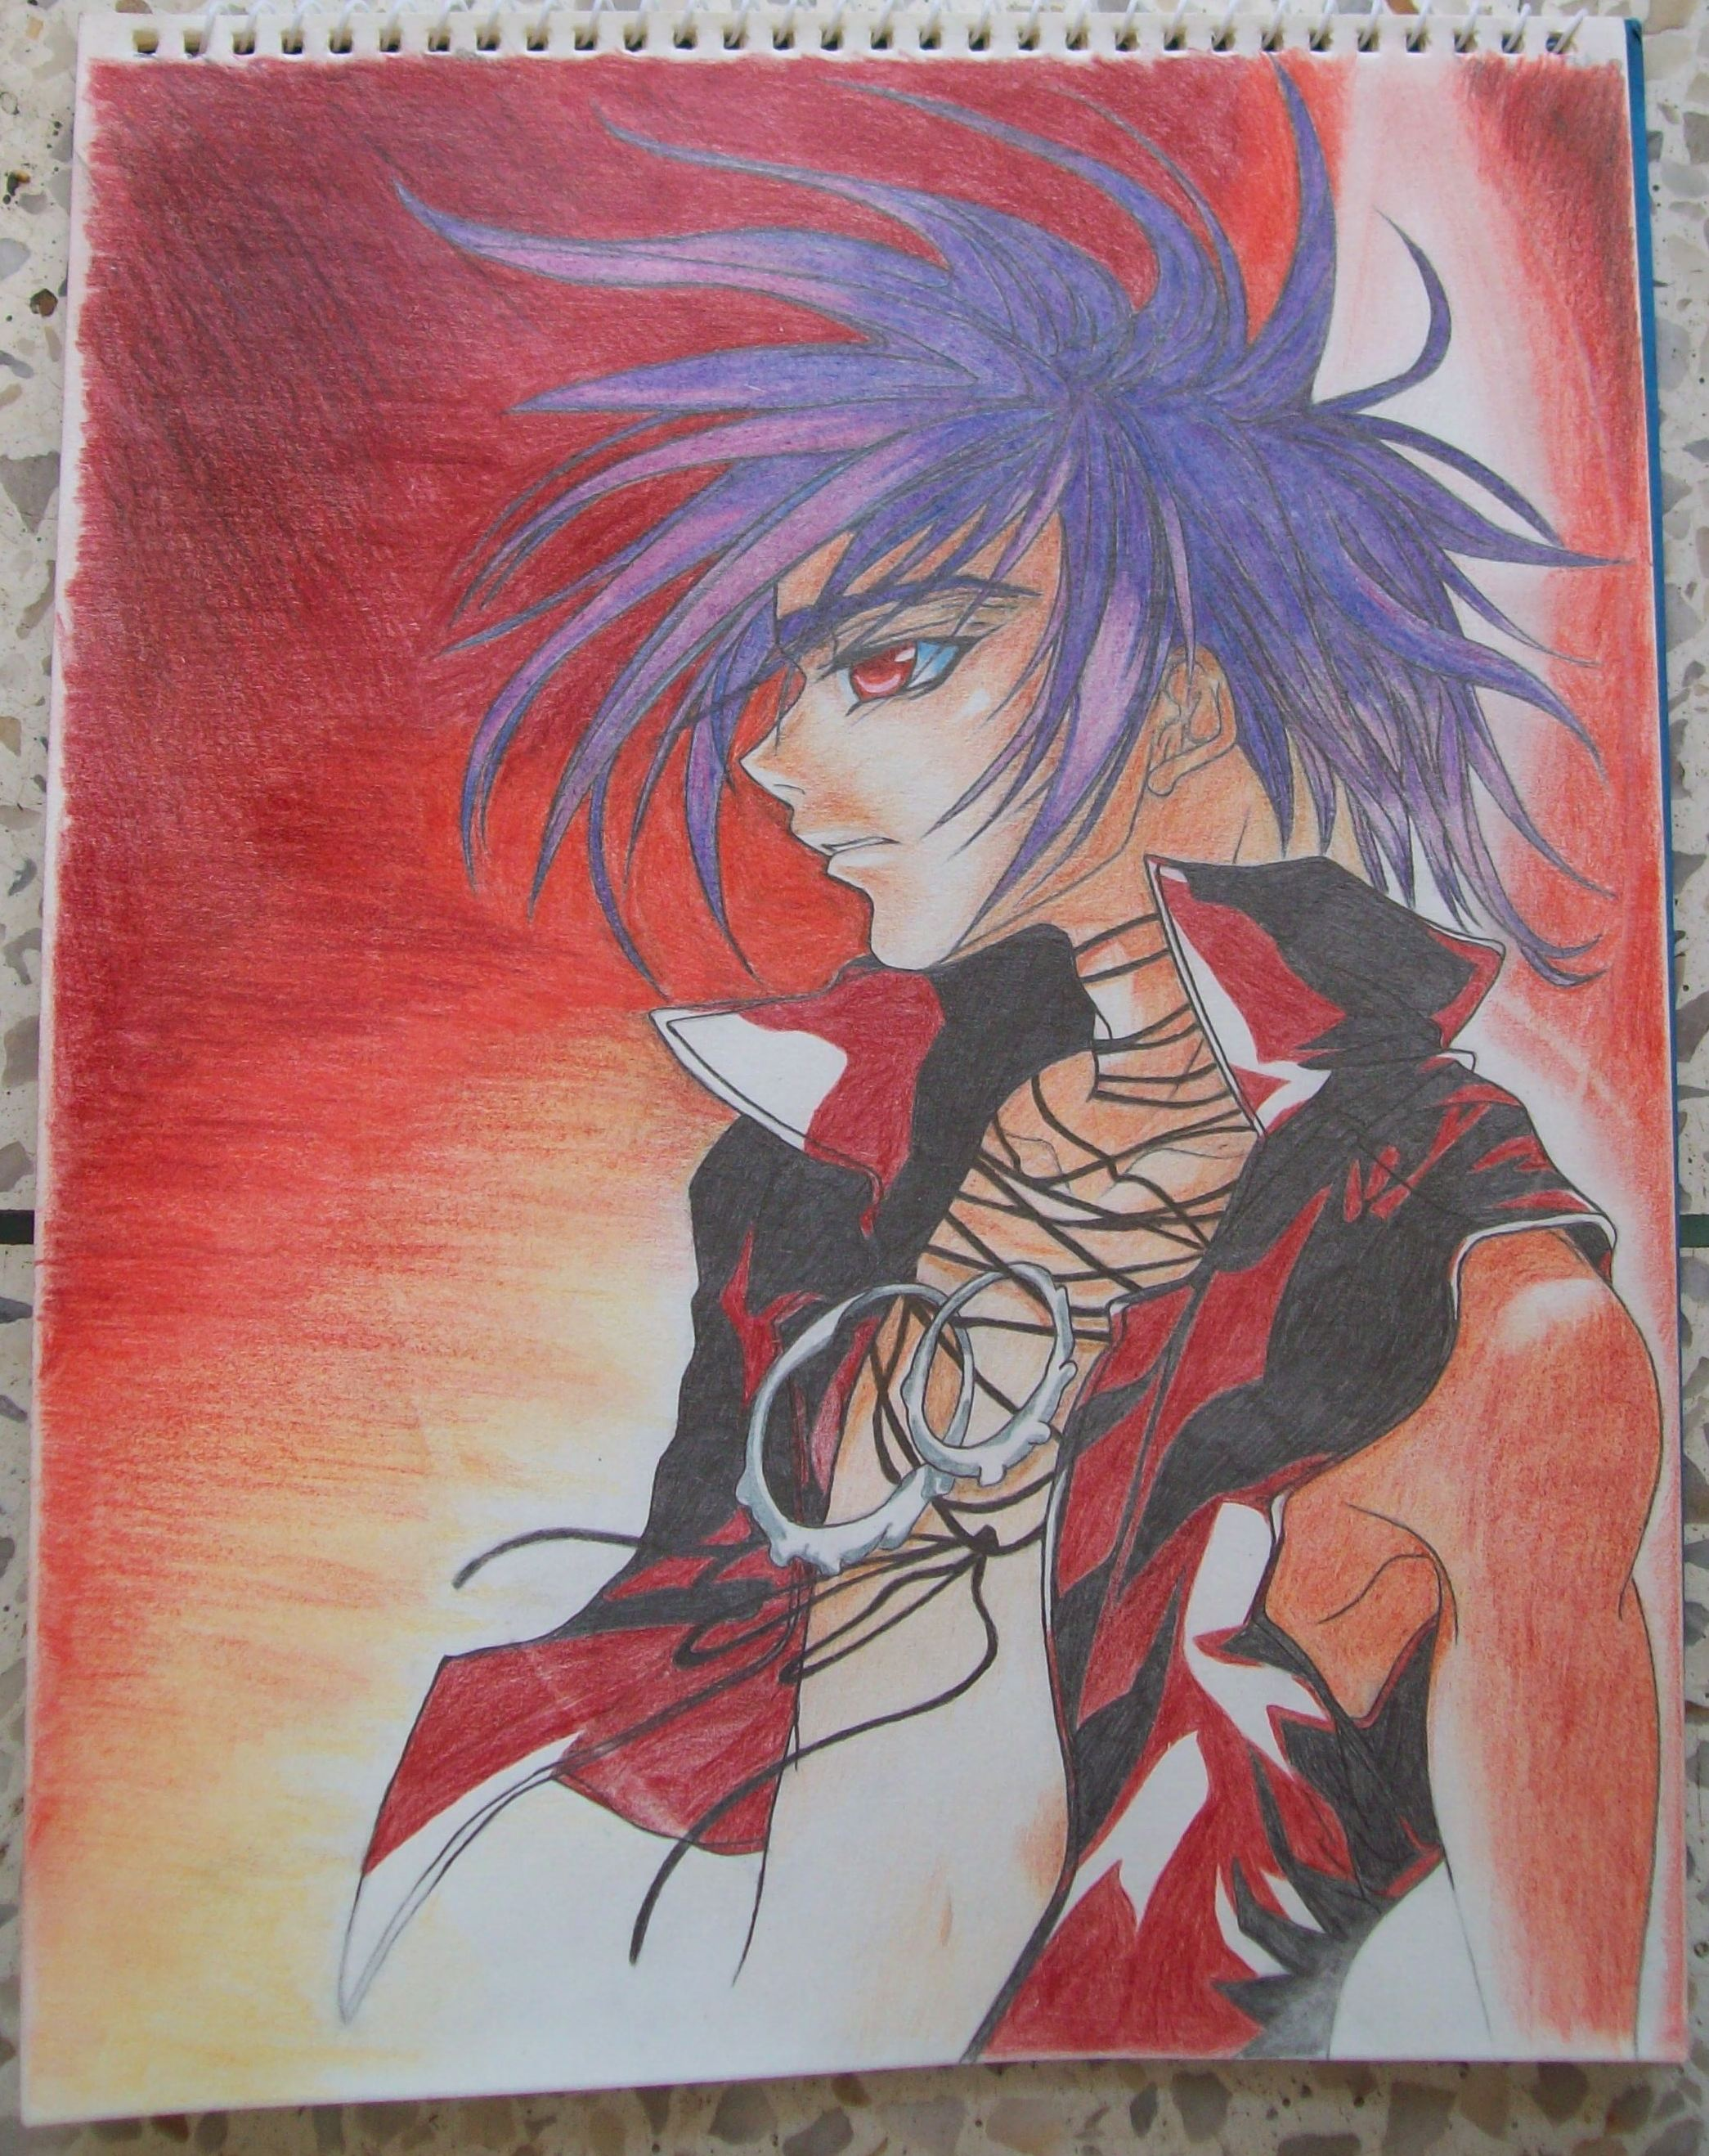 Colored pencil anime drawing by craft lover